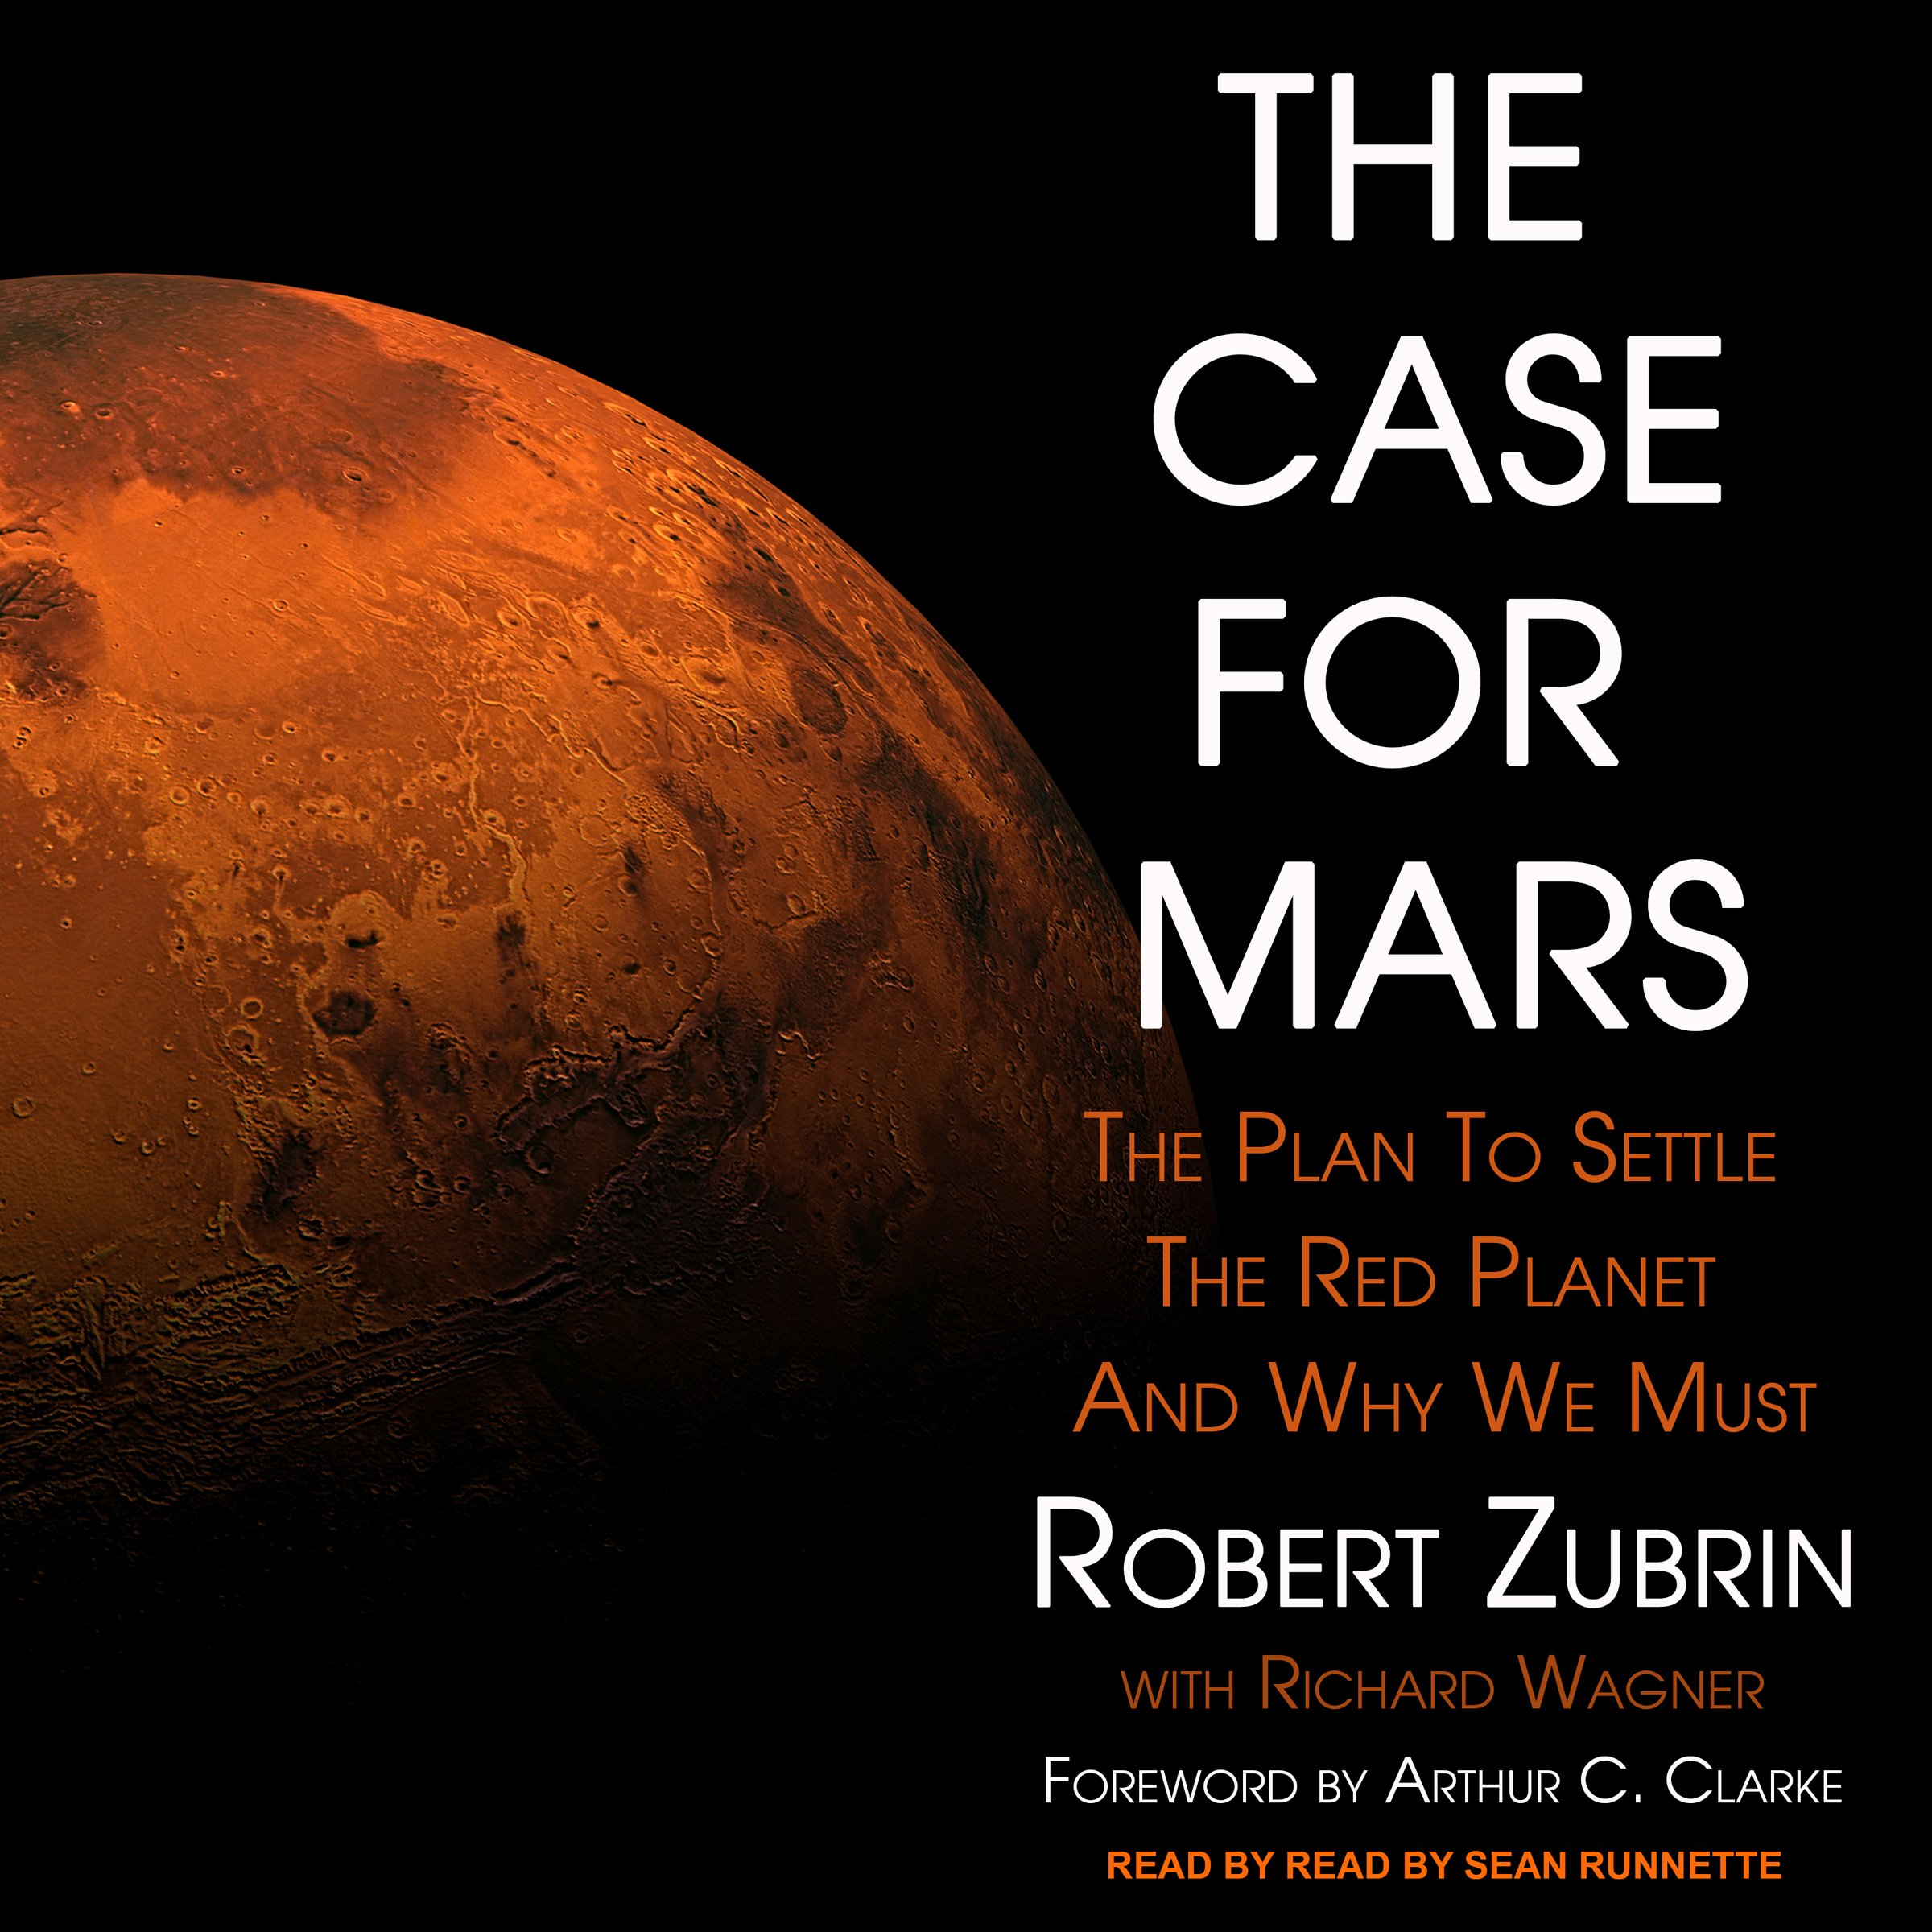 Image OfThe Case For Mars: The Plan To Settle The Red Planet And Why We Must